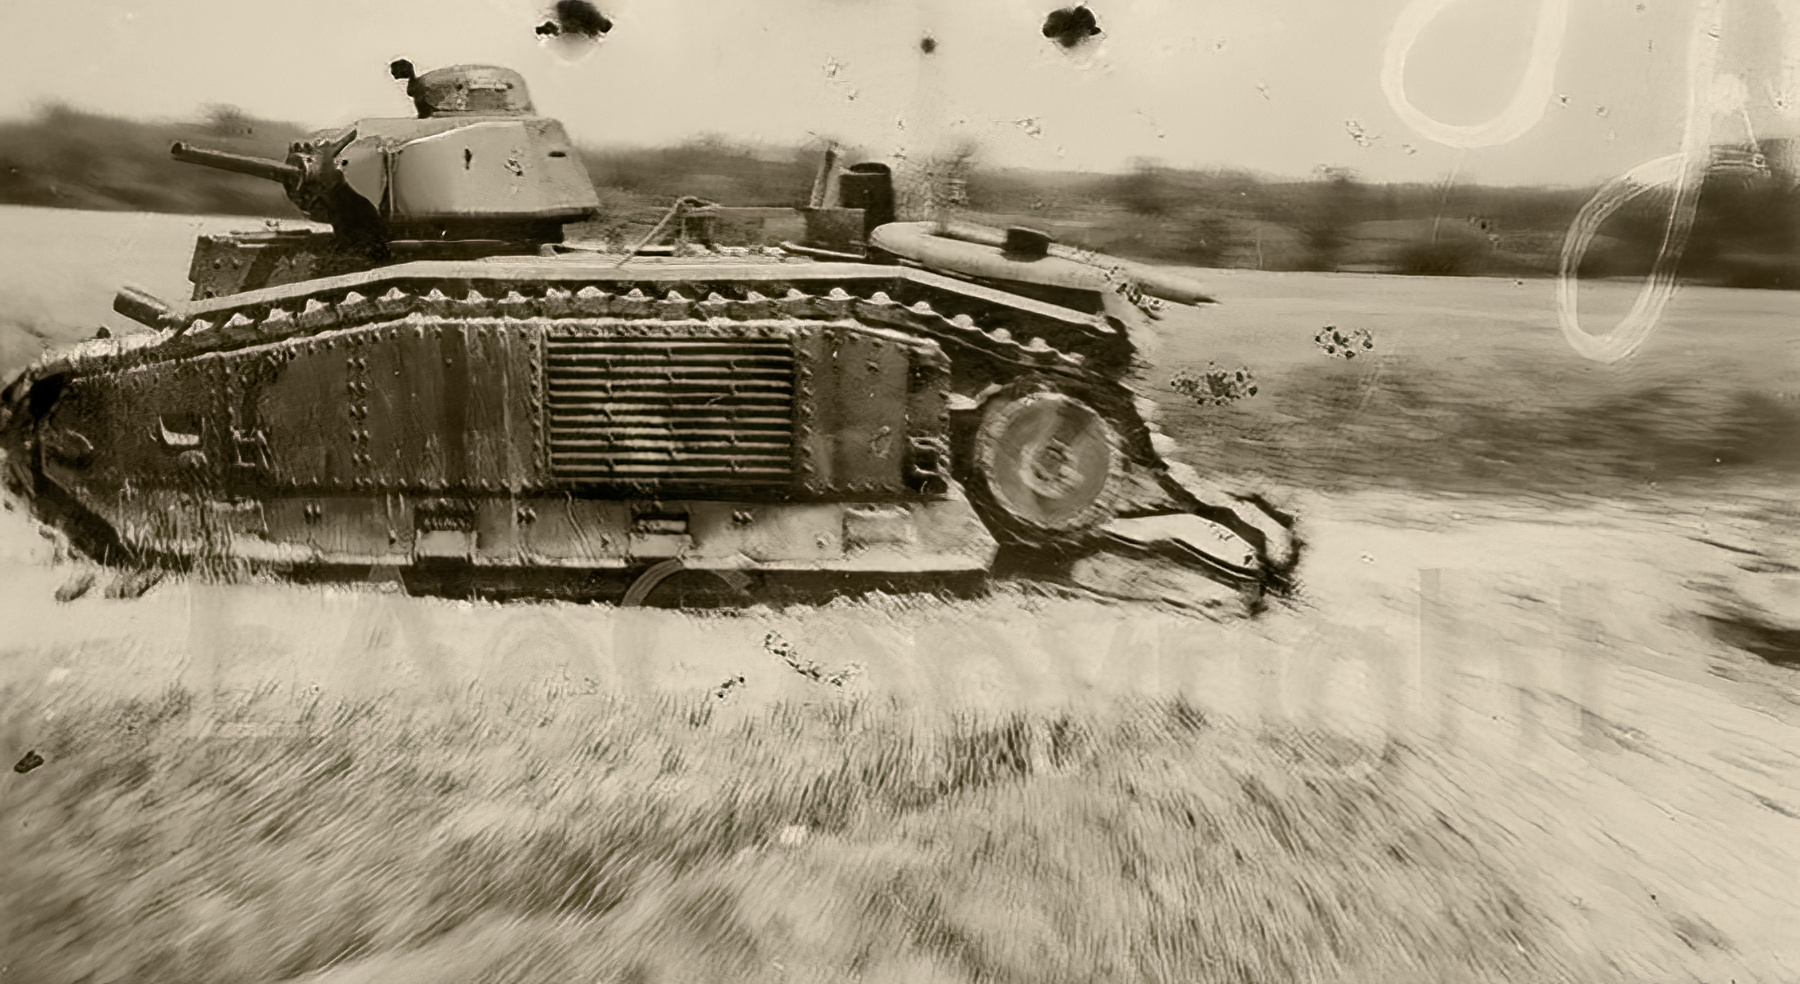 French Army Renault Char B1bis abandoned after losing its track France 1940 ebay 01